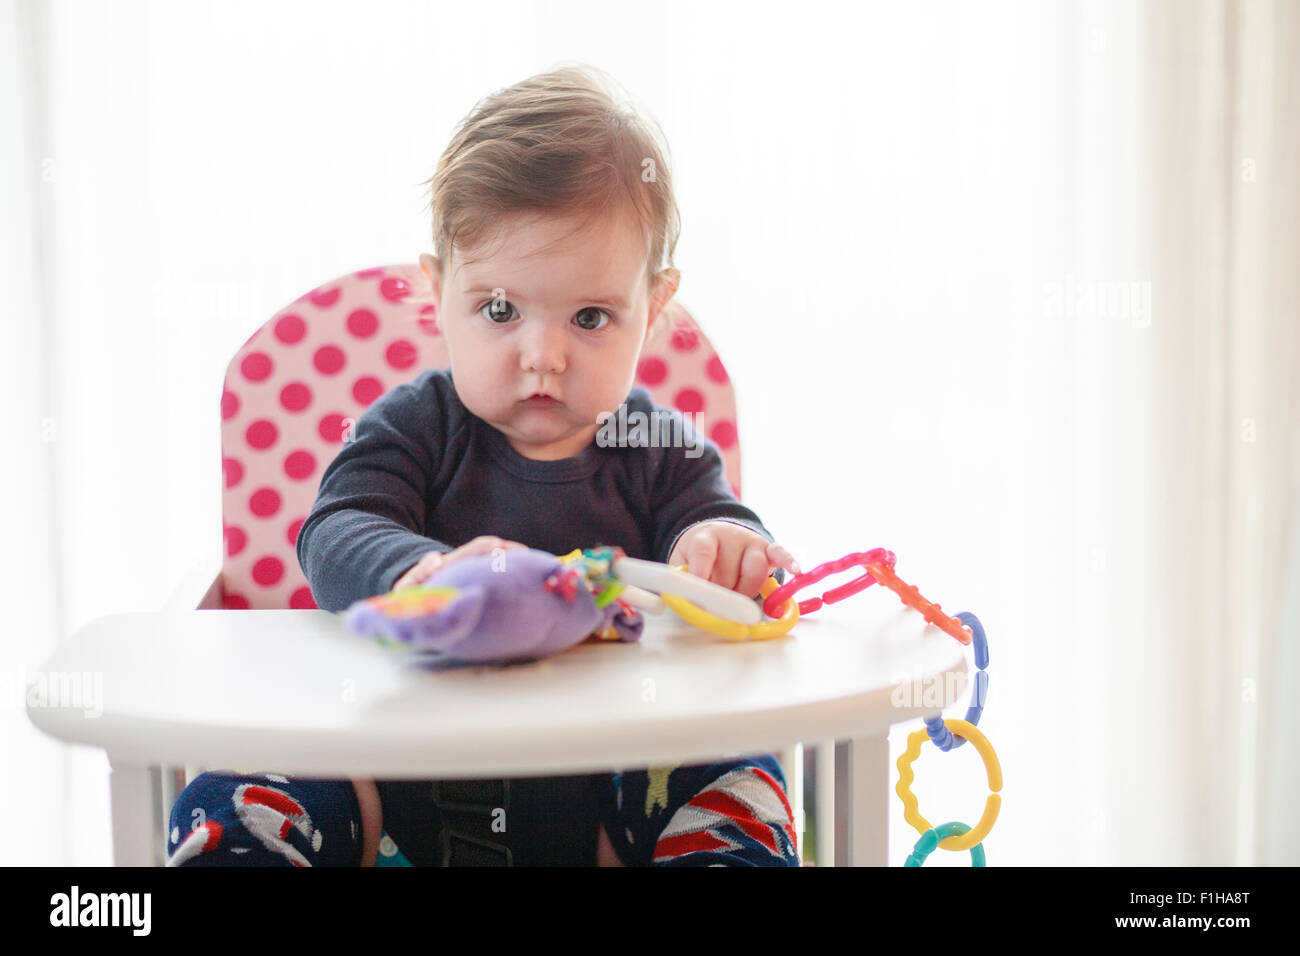 Six (6) month old baby girl in high chair with toy - Stock Image